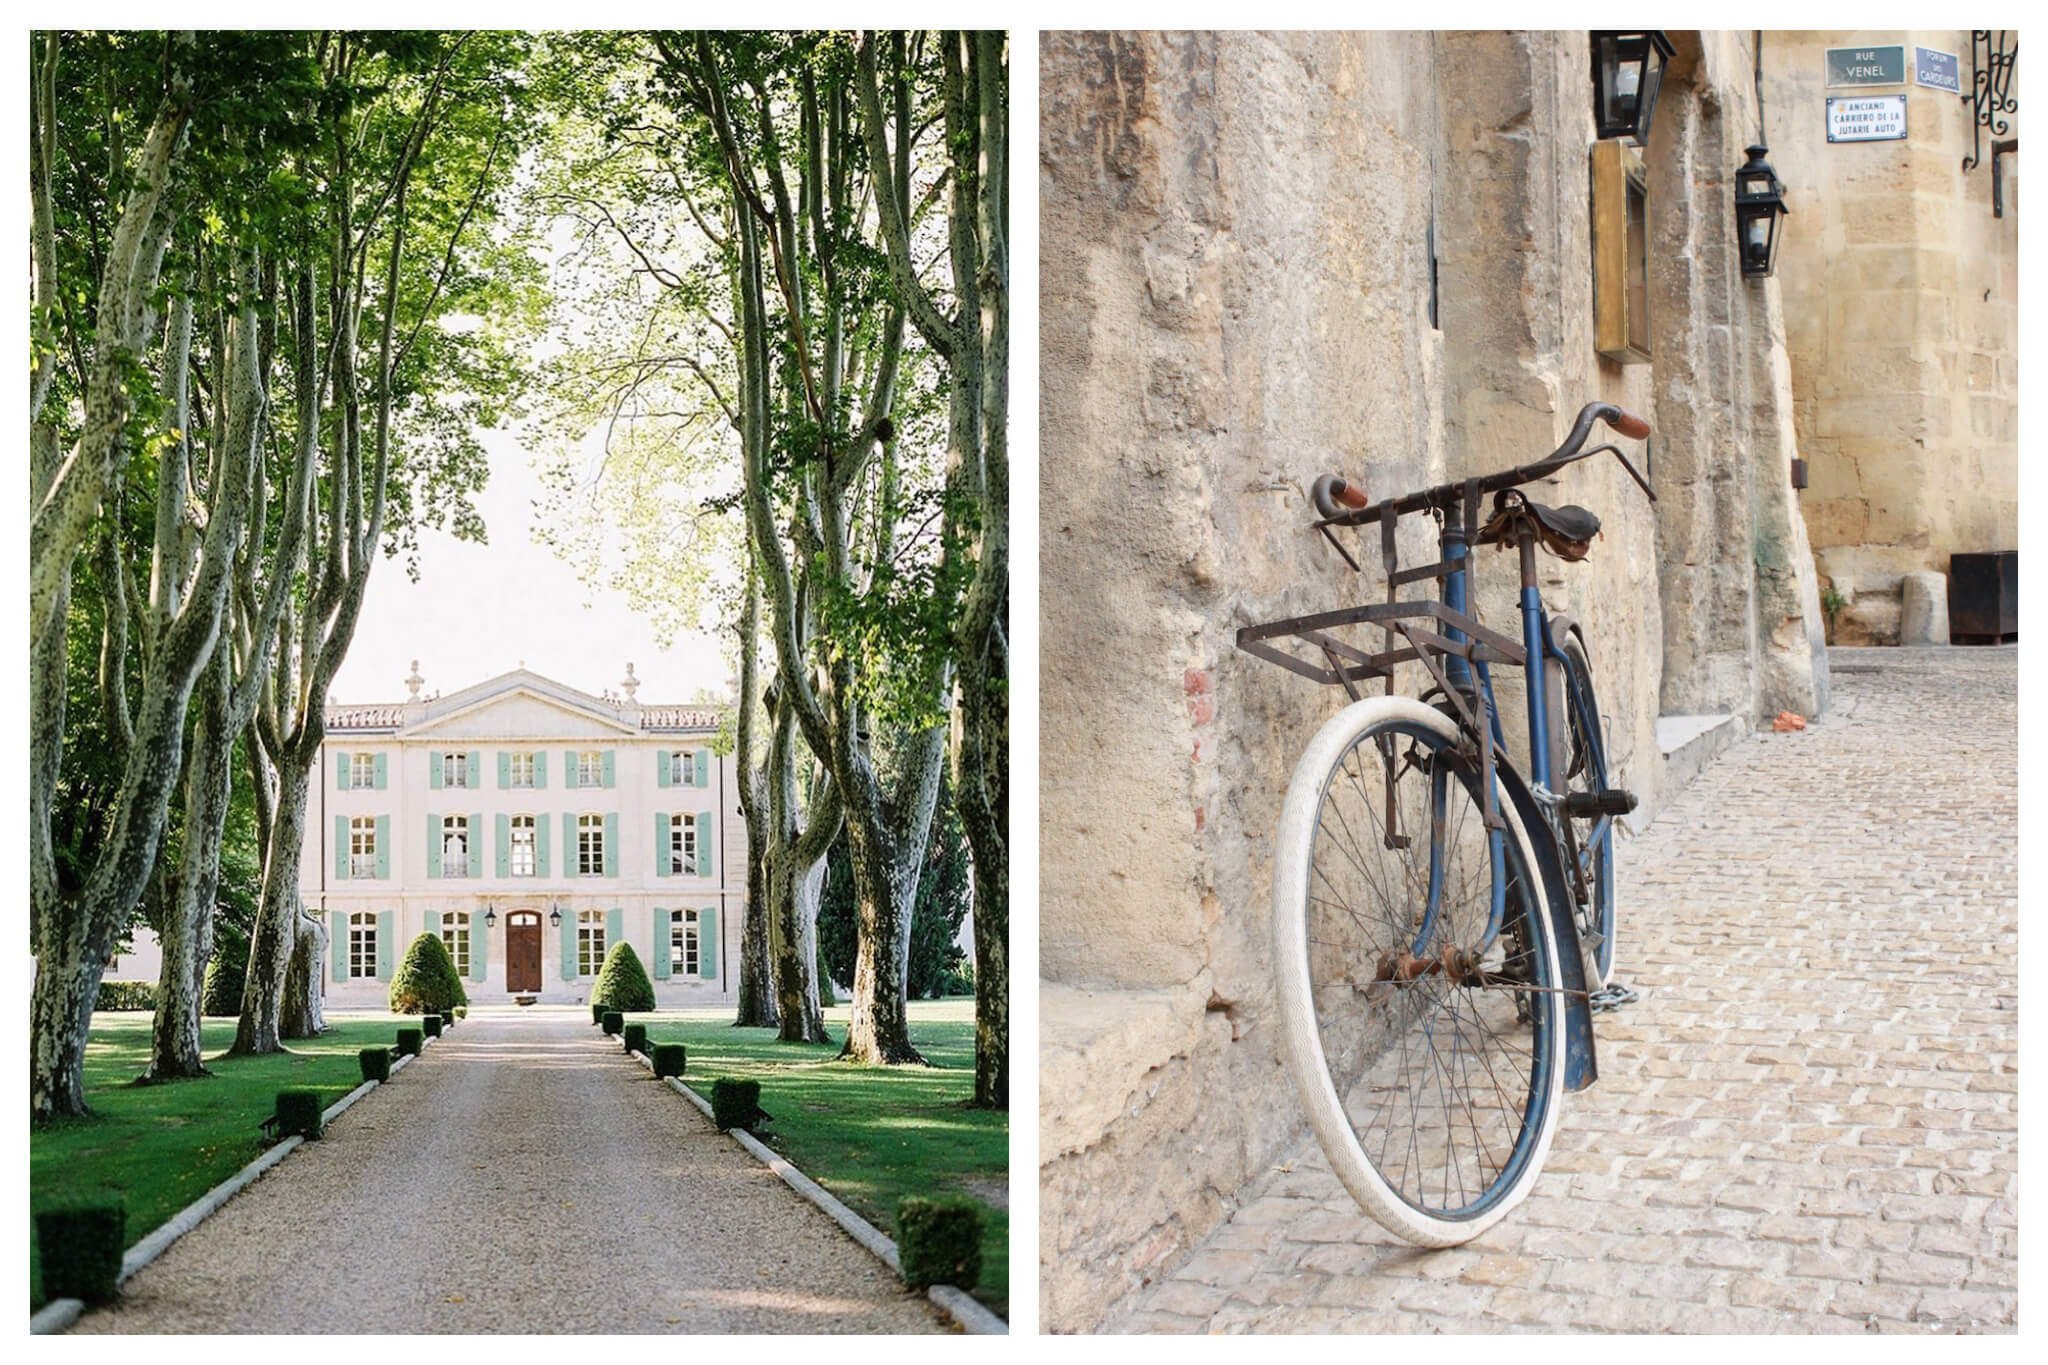 Left: A grand, old building stands at the end of a long driveway, lined with grass and tress near Arles, Right: A blue bike leans against a stone wall in the old-but-beautiful town of Arles.